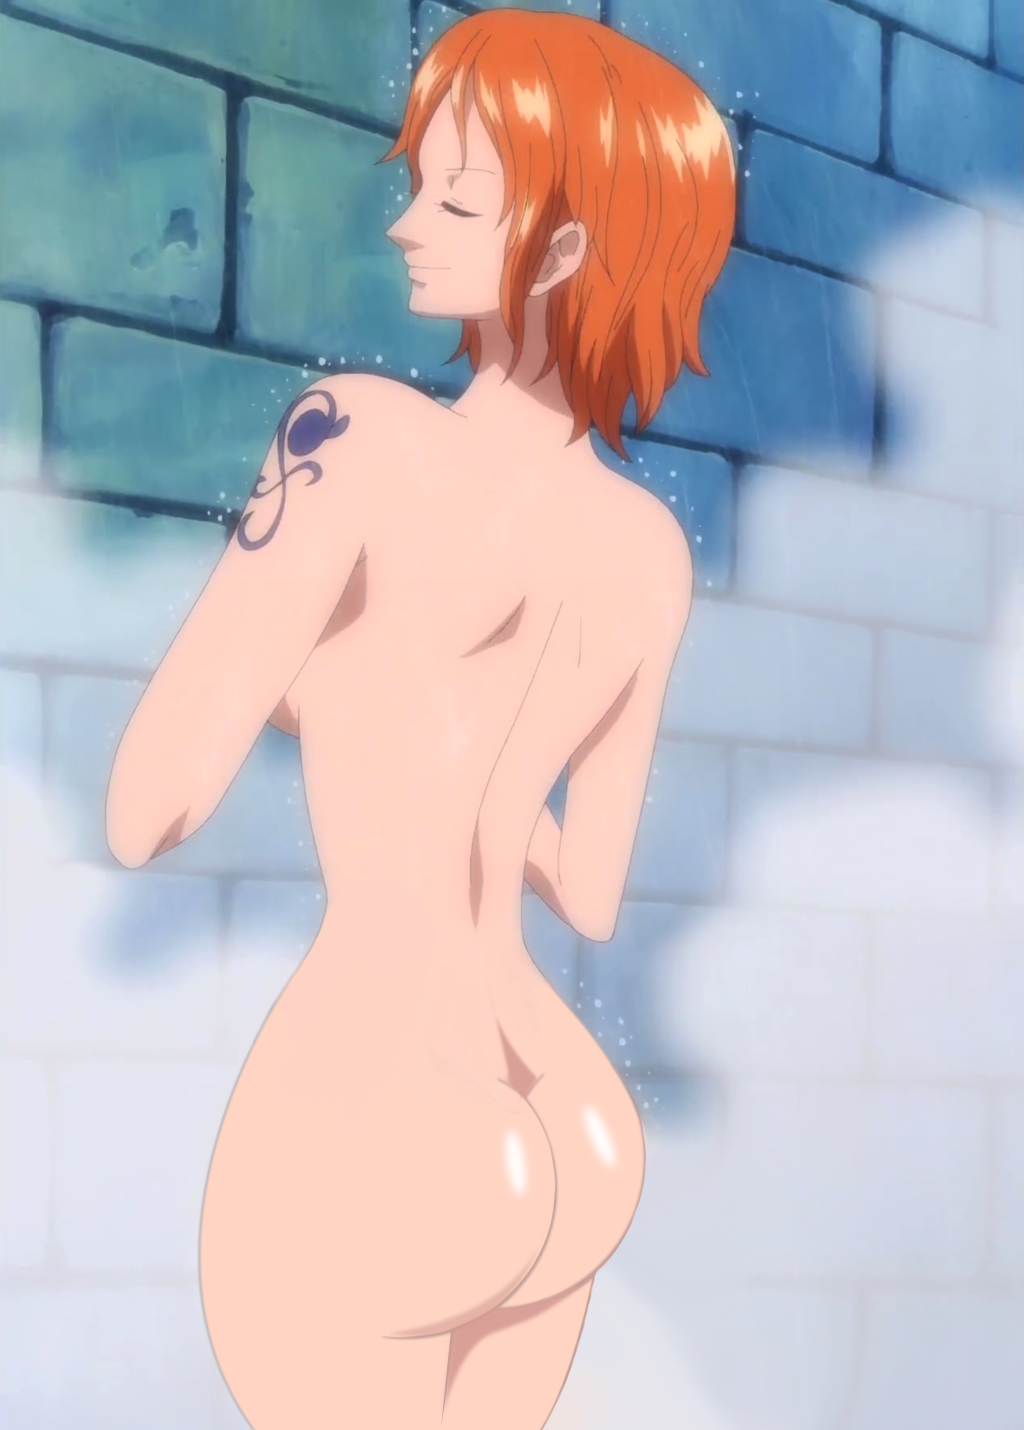 hot nude nami one piece